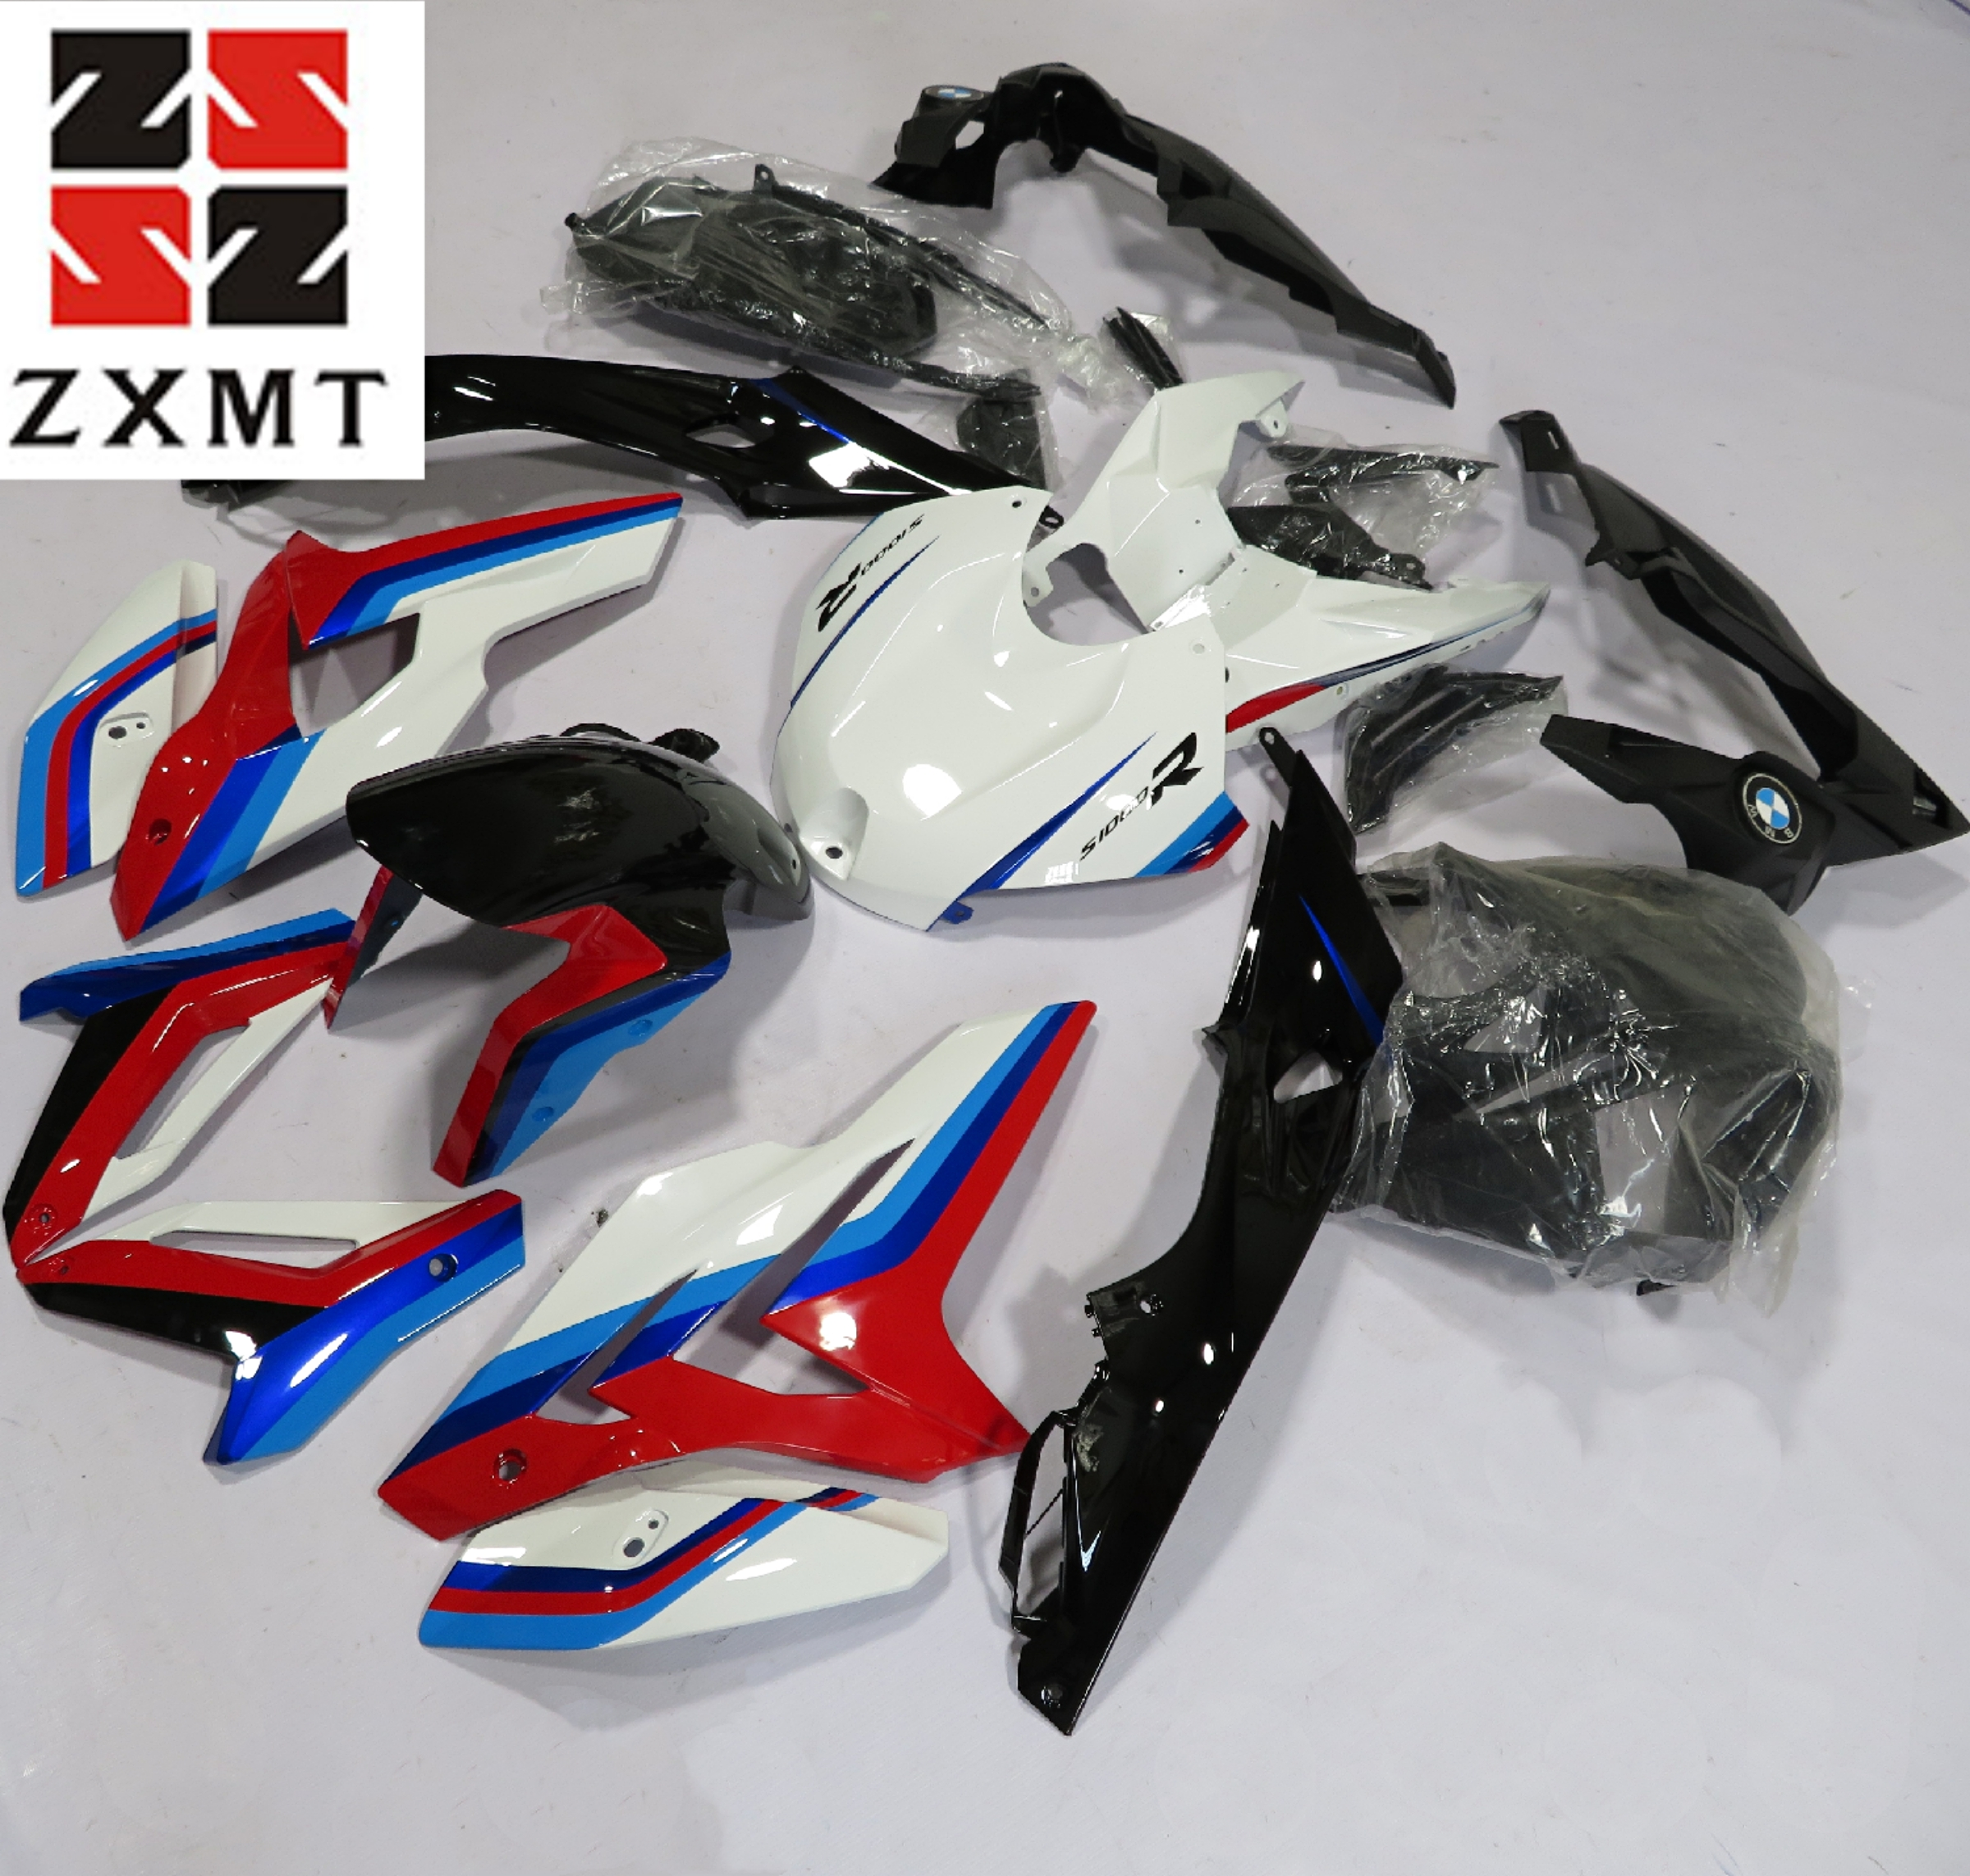 ZXMT Full Fairing Set Kit Fit For BMW S1000RR 2015-2016 Complete Bodywork Panel Injection Mould S1000 RR 15 16 Blue Red White image